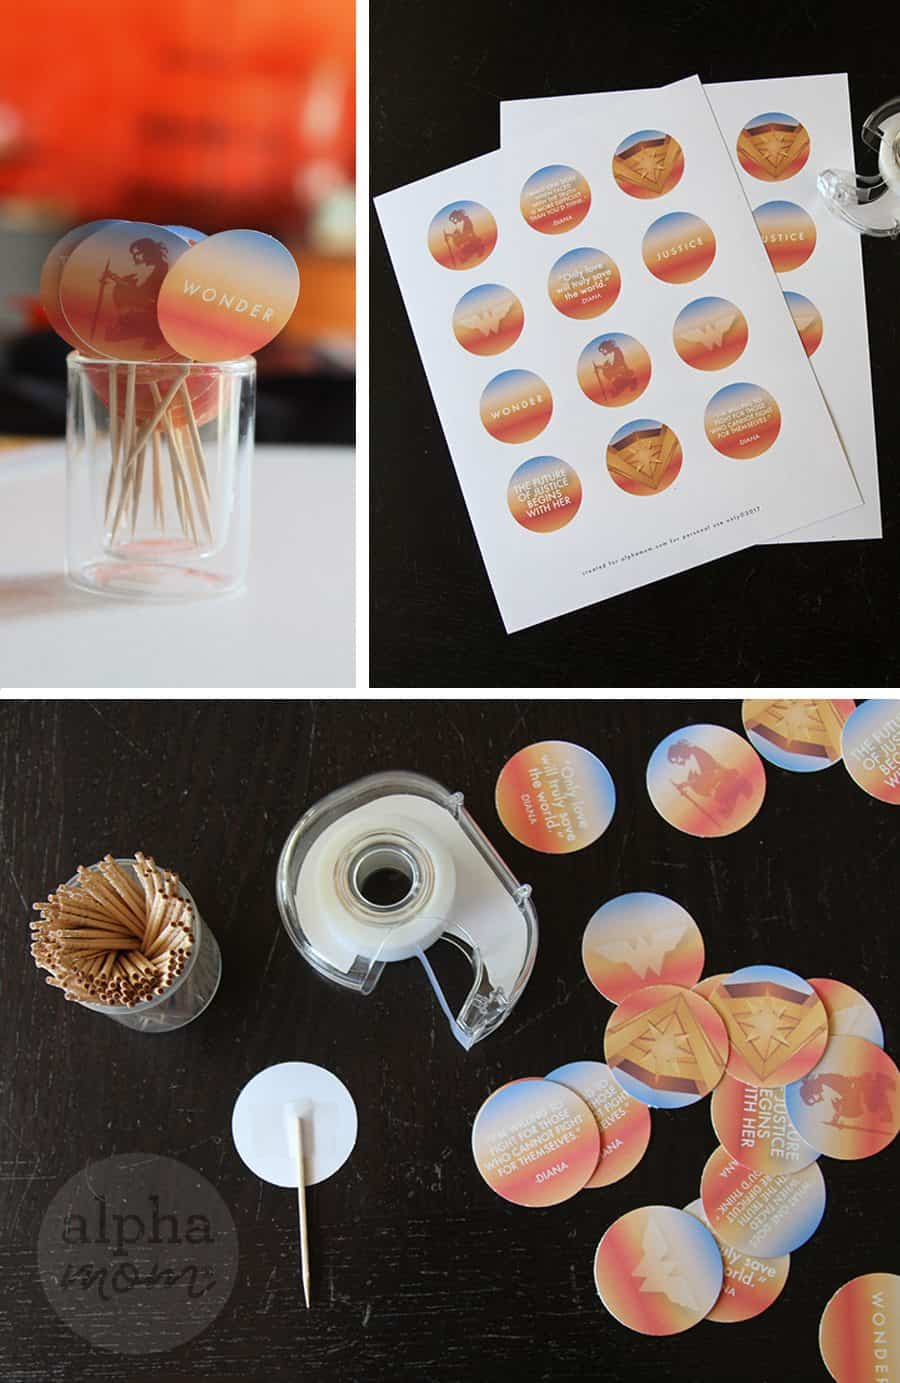 Wonder Woman Cupcake Toppers Printable! (supplies) by Brenda Ponnay for Alphamom.com